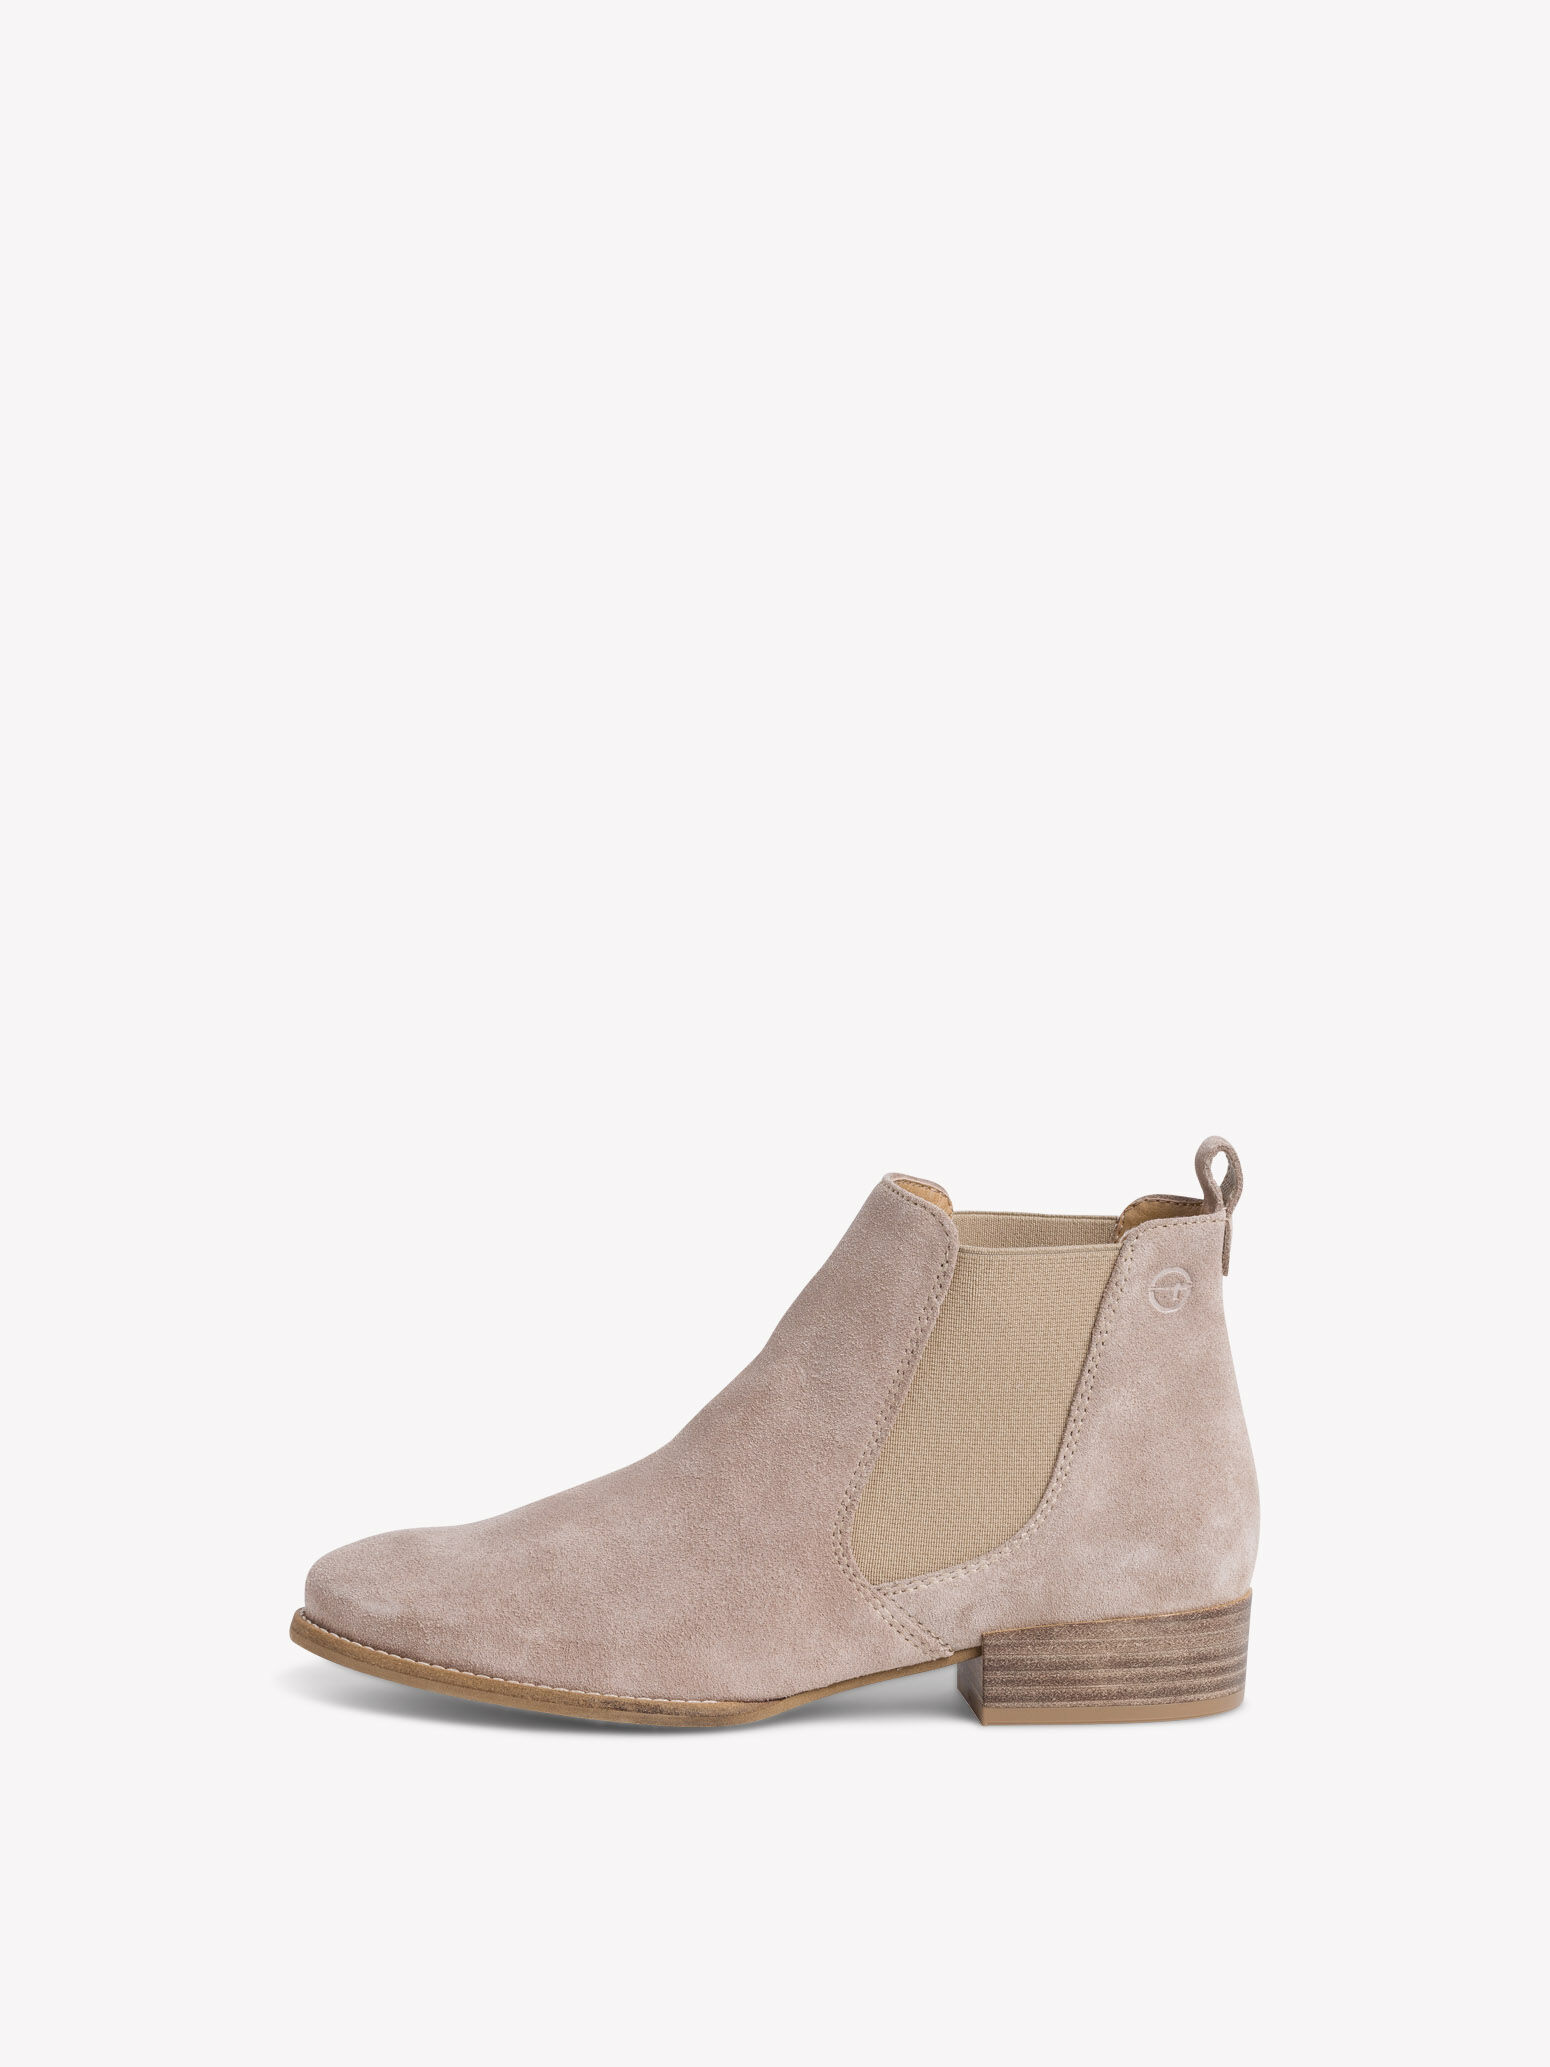 Leather Chelsea boot - beige 1-1-25315